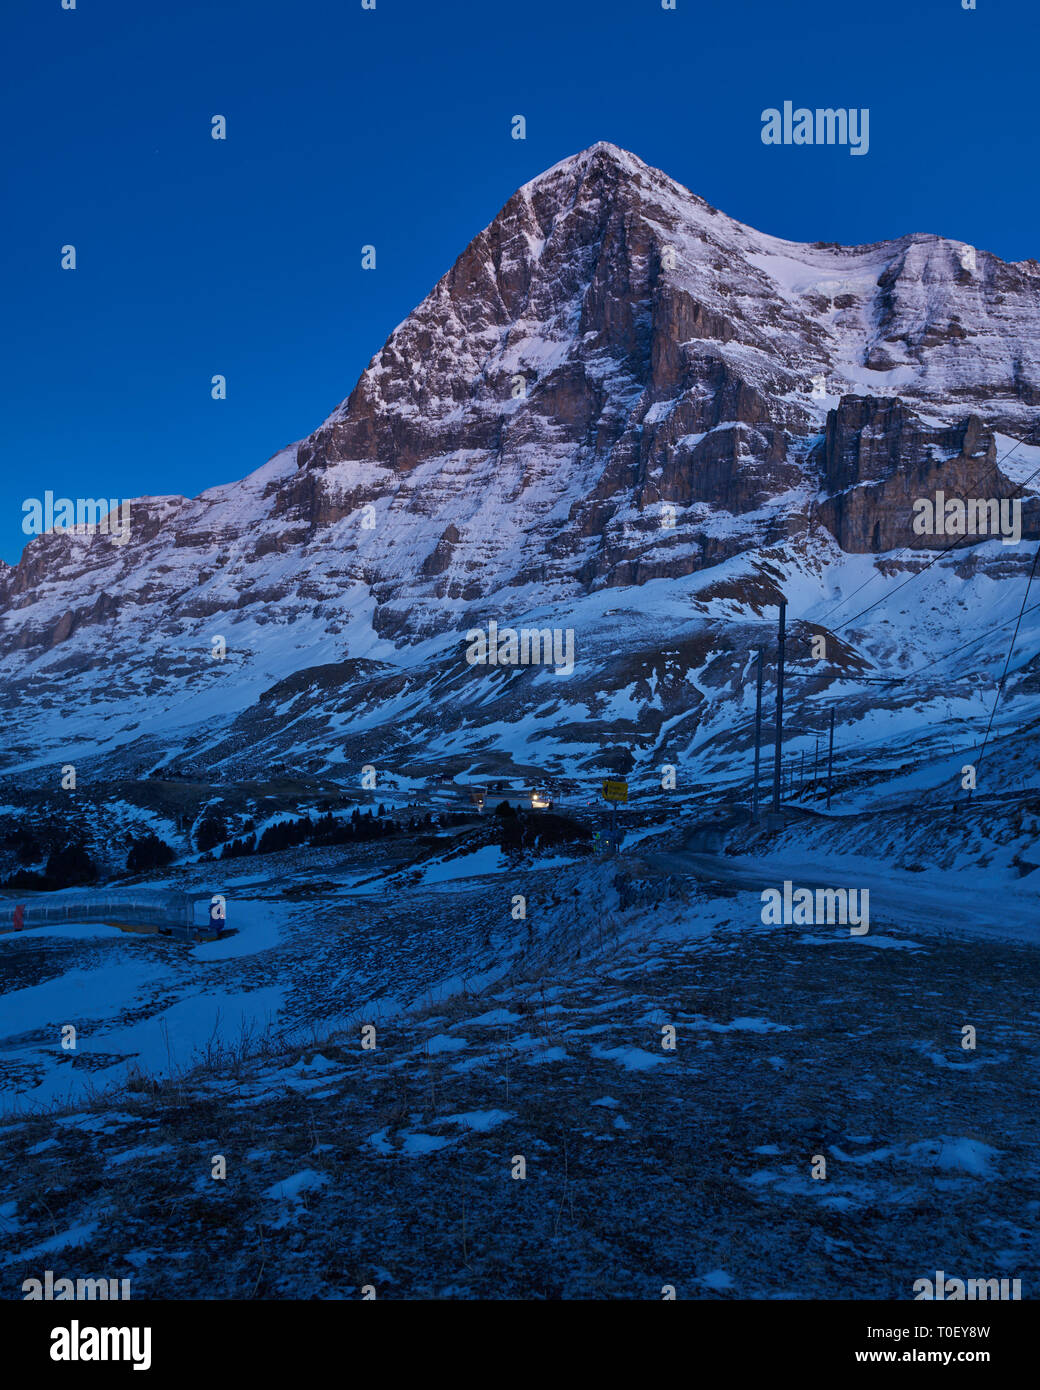 Unplugged in the Jungfrau region. An unusual moonlit view of the Eiger's North Face during the evening blue hour. - Stock Image